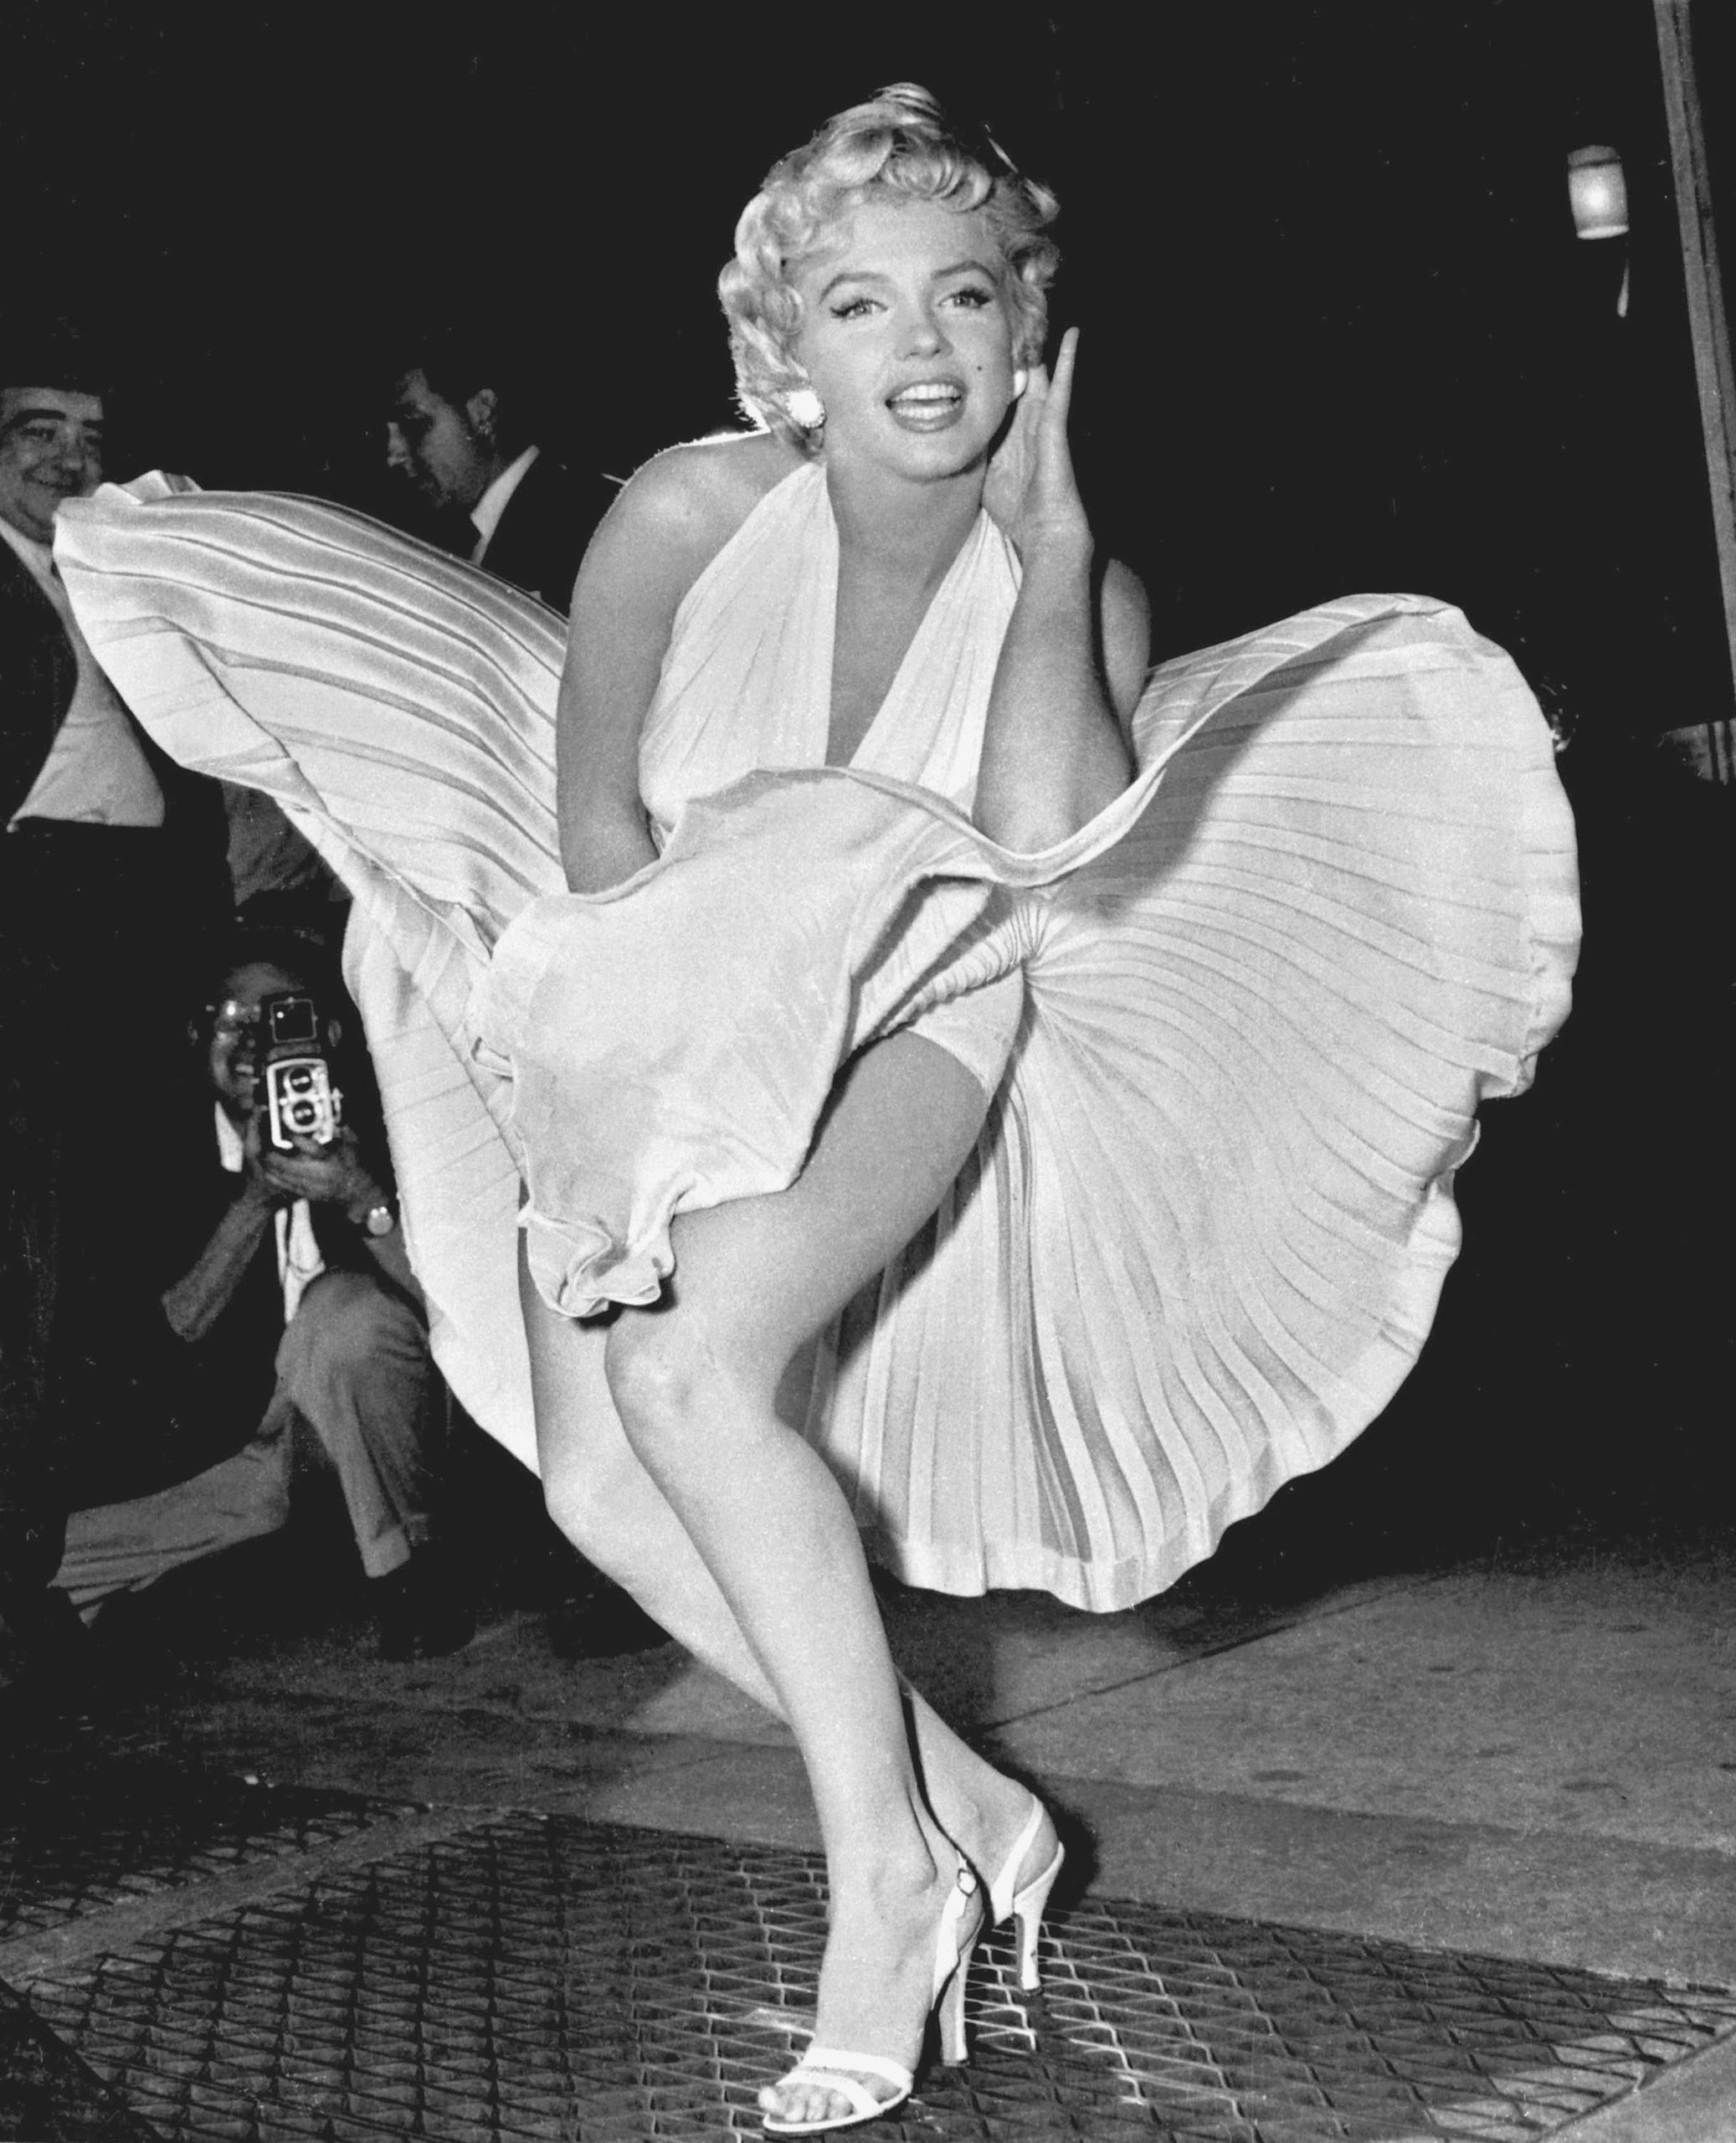 Marilyn Monroe poses over the updraft of New York subway grating while in character for the filming of The Seven Year Itch in New York City on Sept. 15, 1954.